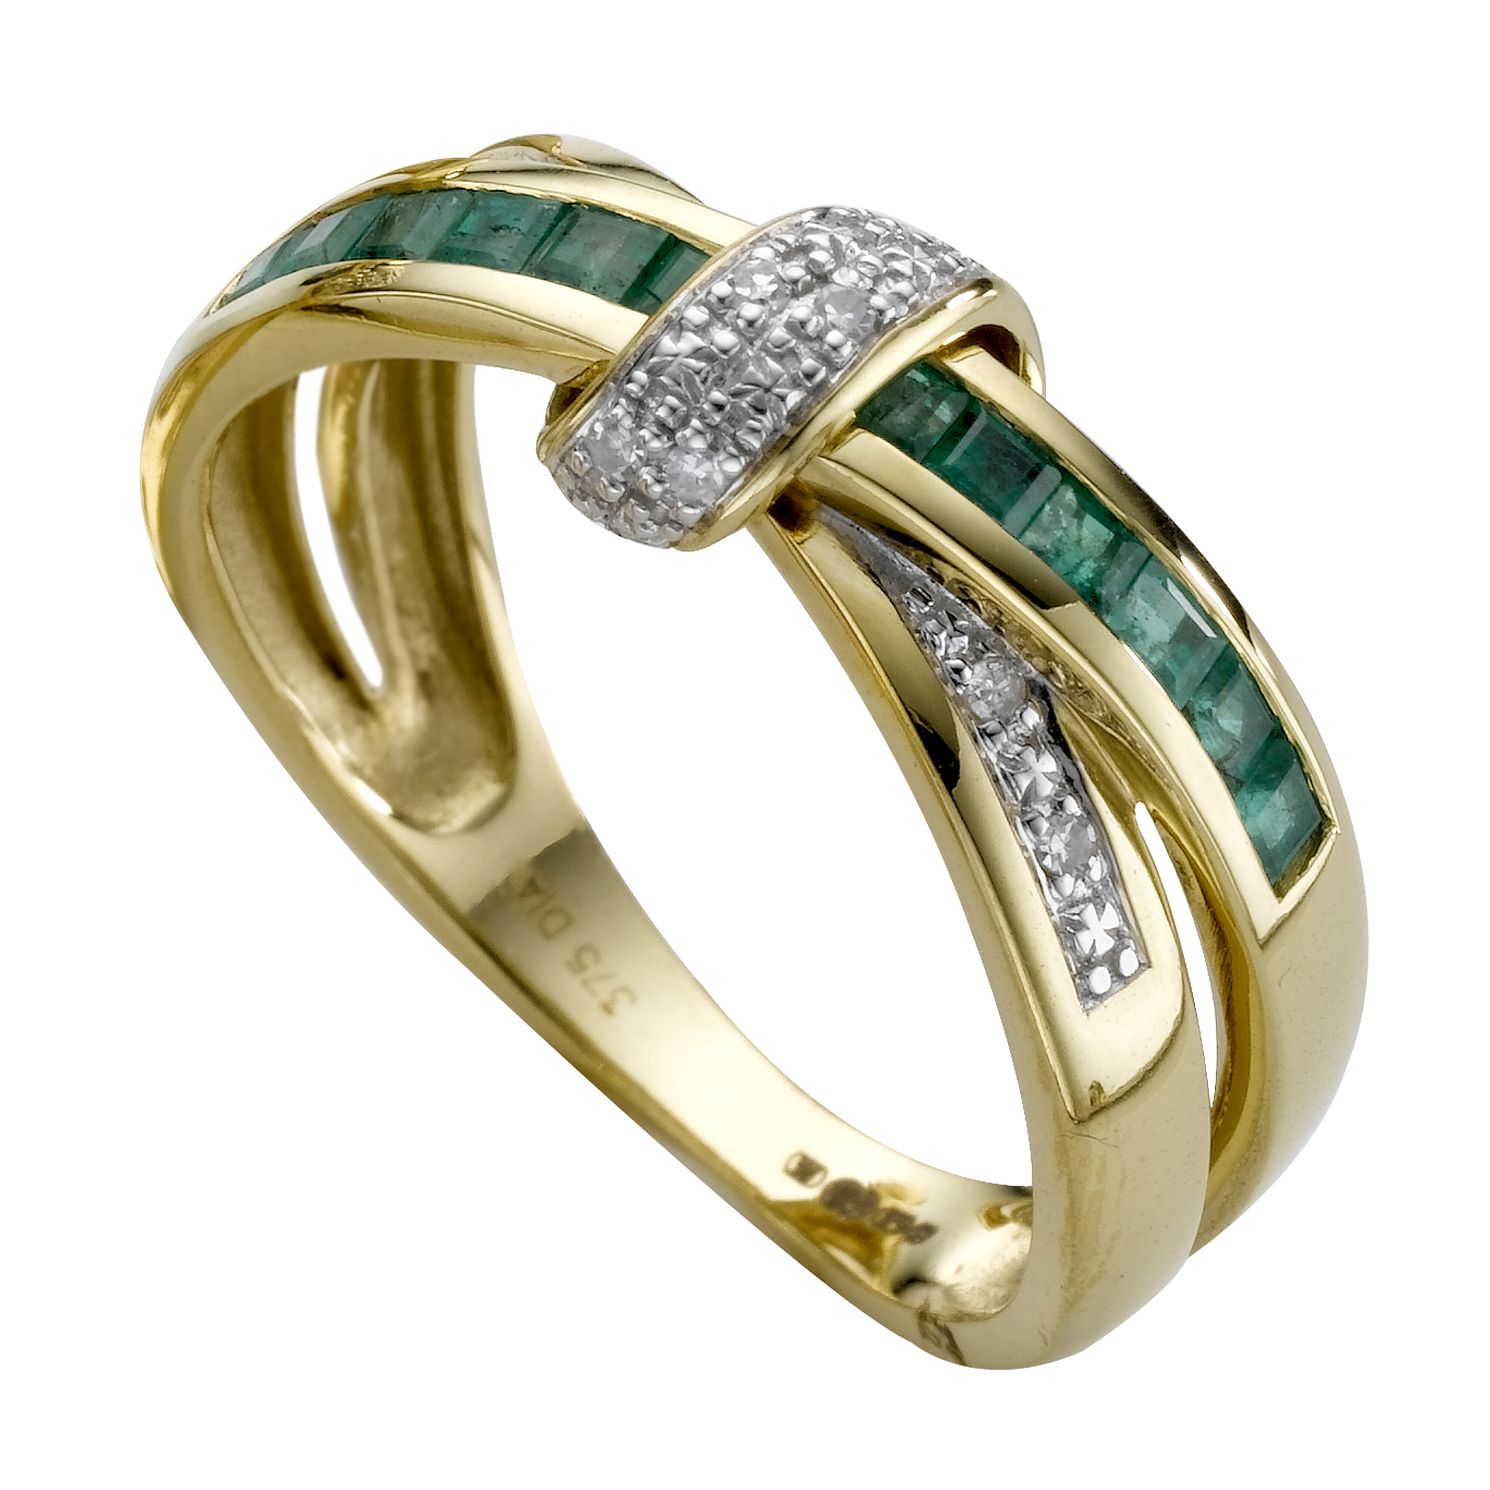 pave pin cut emerald a diamond bands rainy on baubles band heart eternity monday